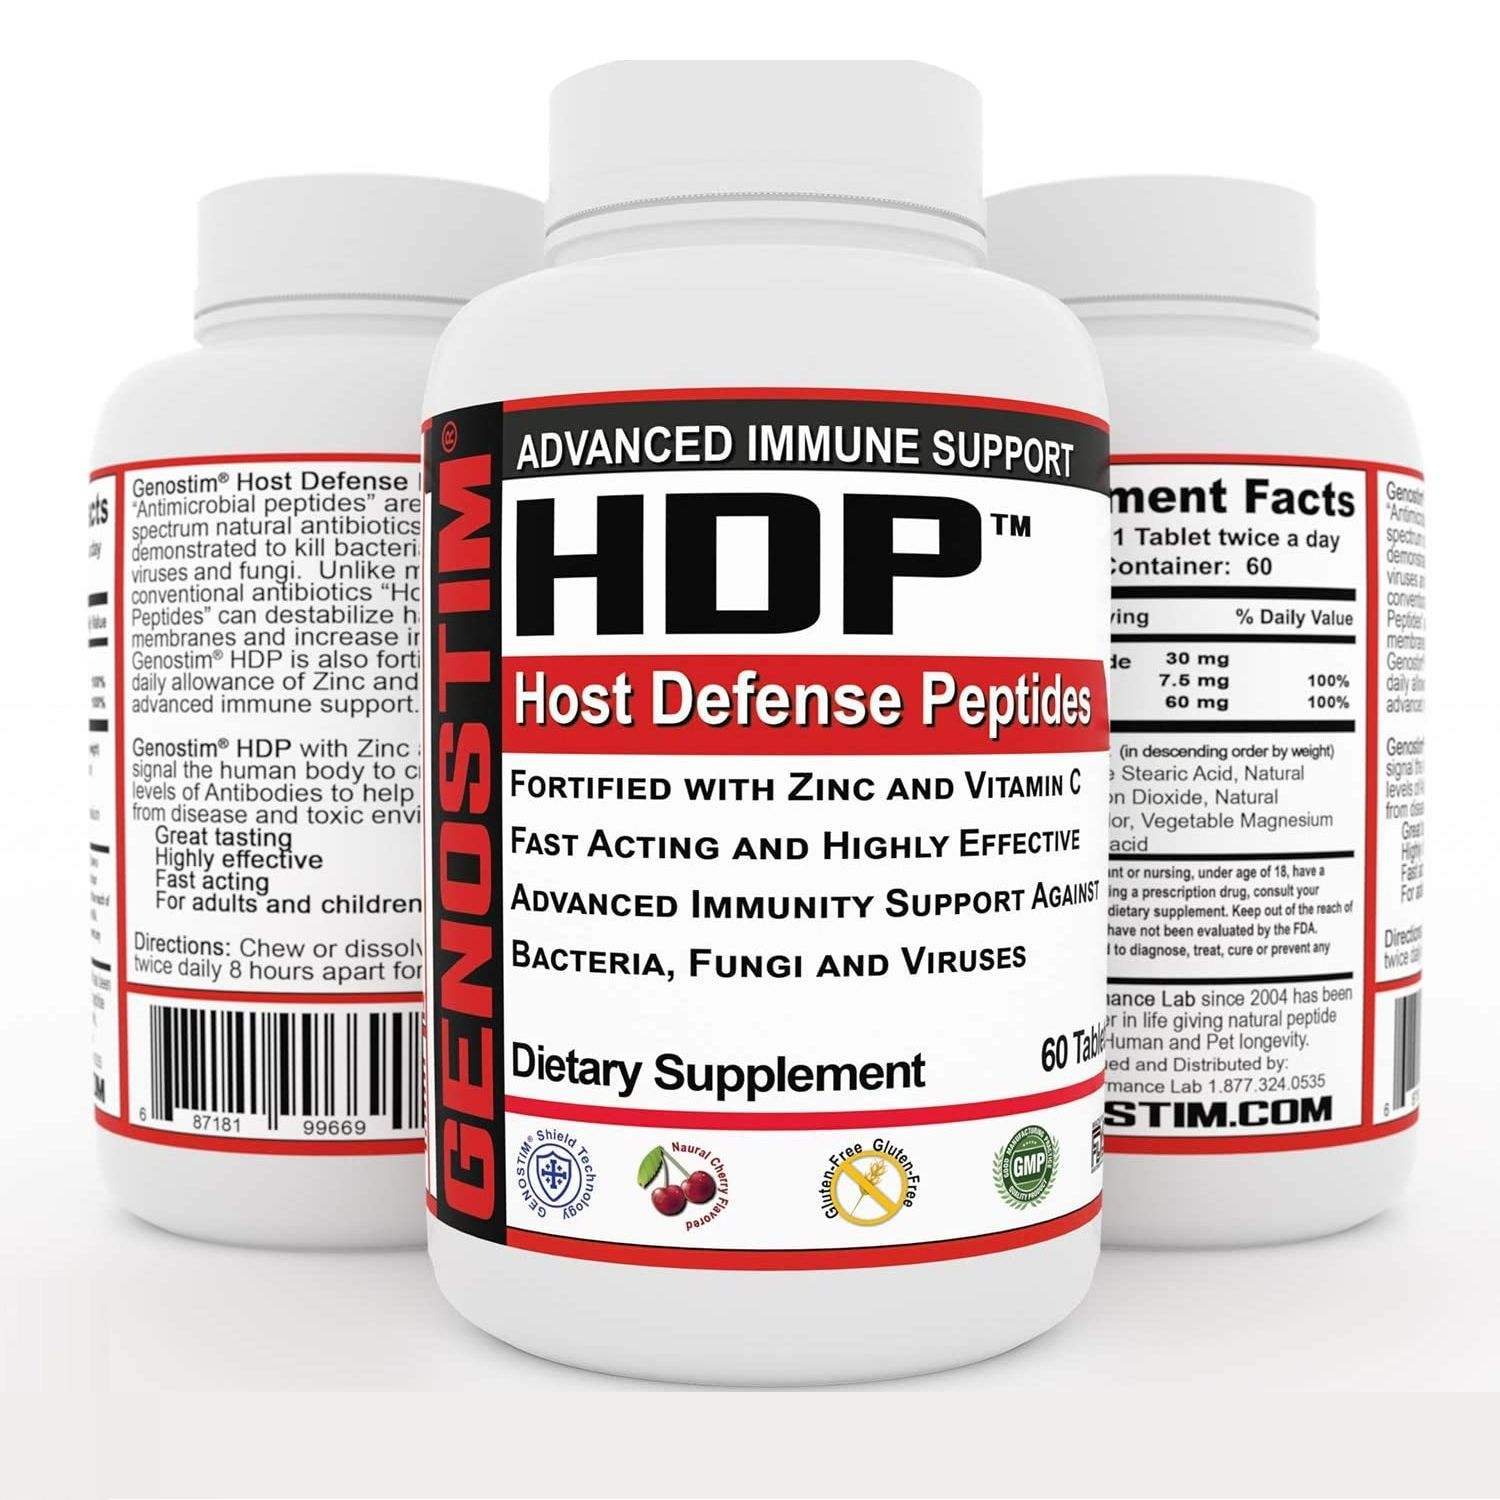 Genostim Host Defense Peptides (HDP) Immune Support Anti-Viral Dietary Supplement with Zinc and Vitamin C